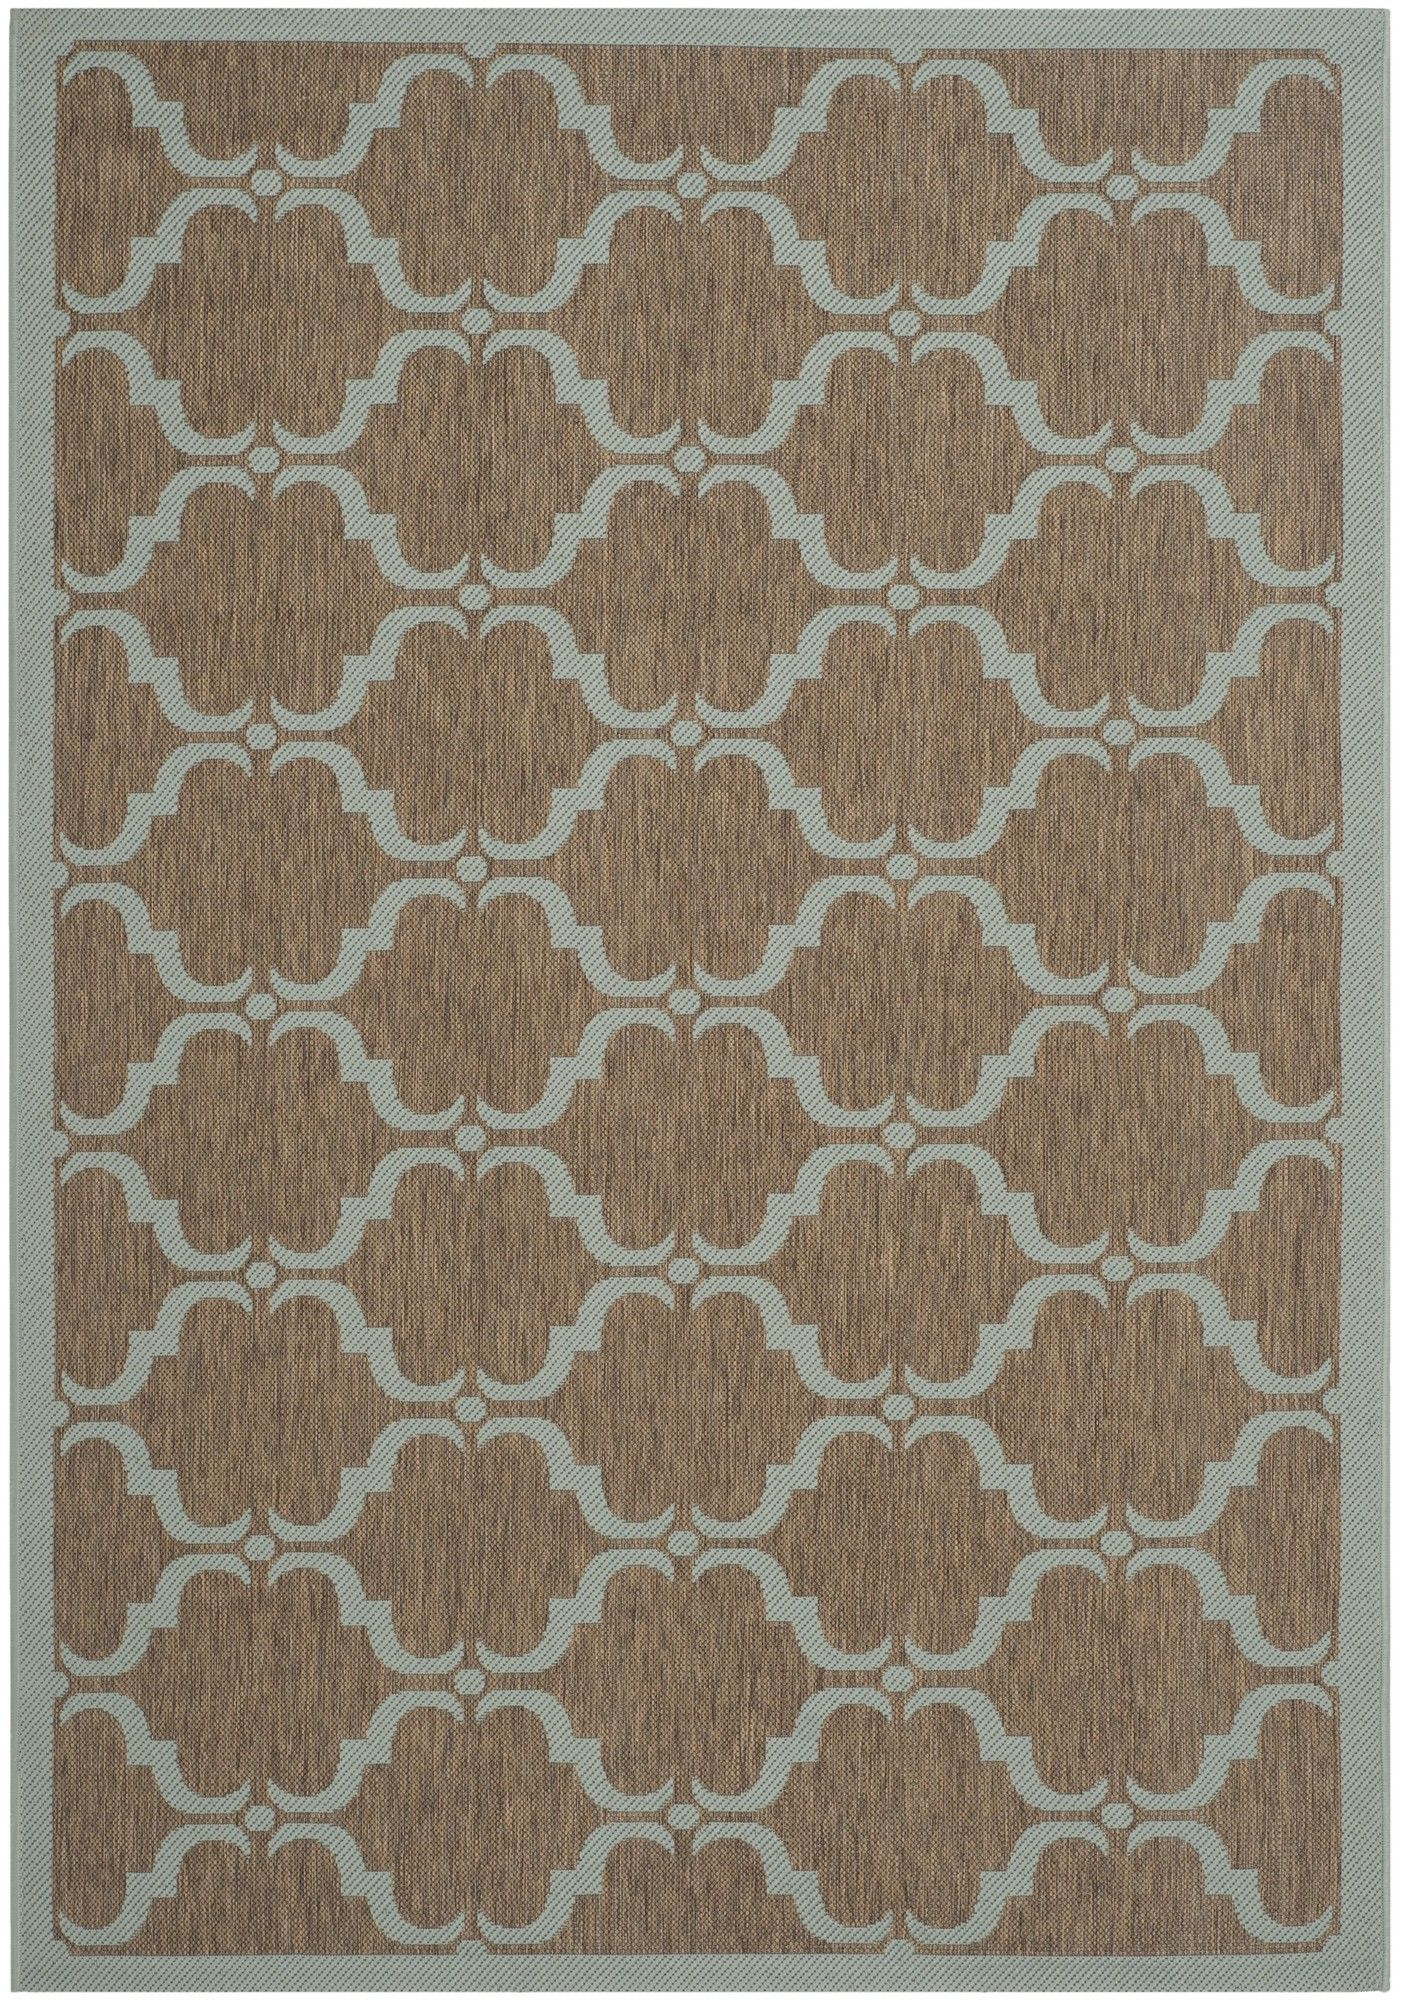 Schofield Brown / Aqua Indoor / Outdoor Area Rug